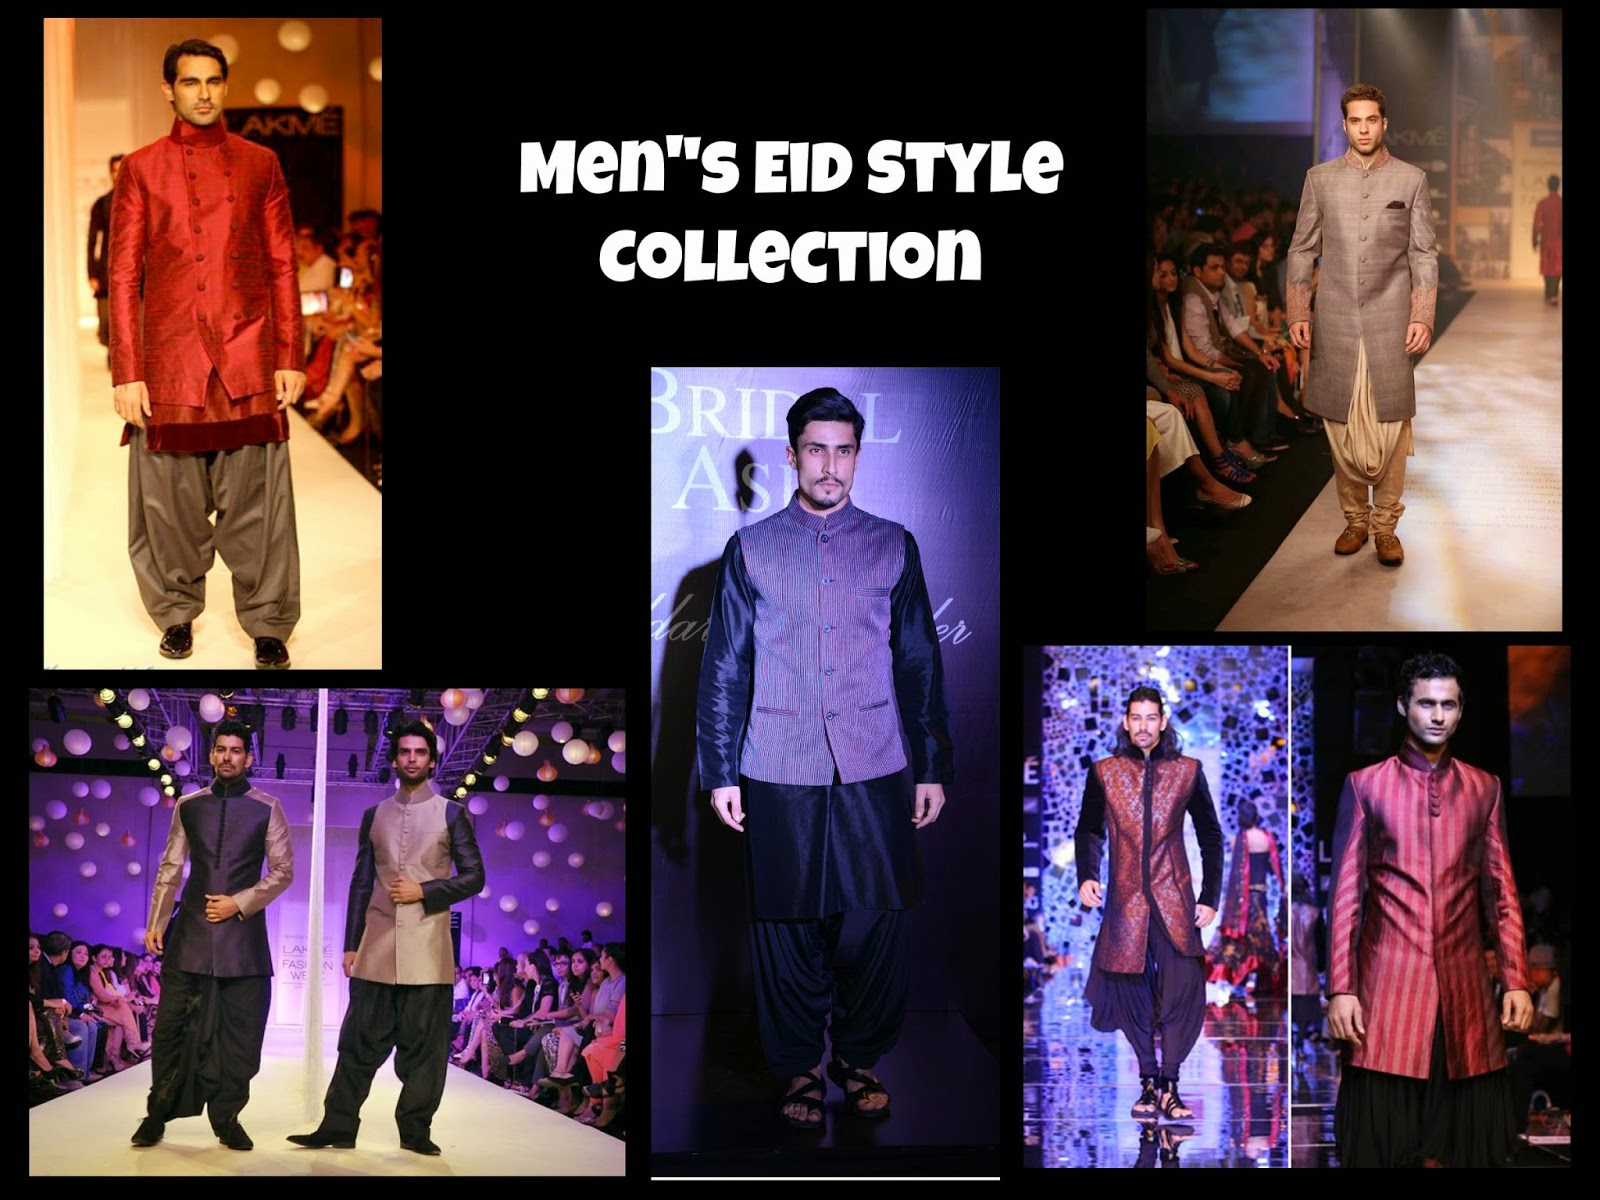 eid collection for men, eid style for men,eid collection 2014,